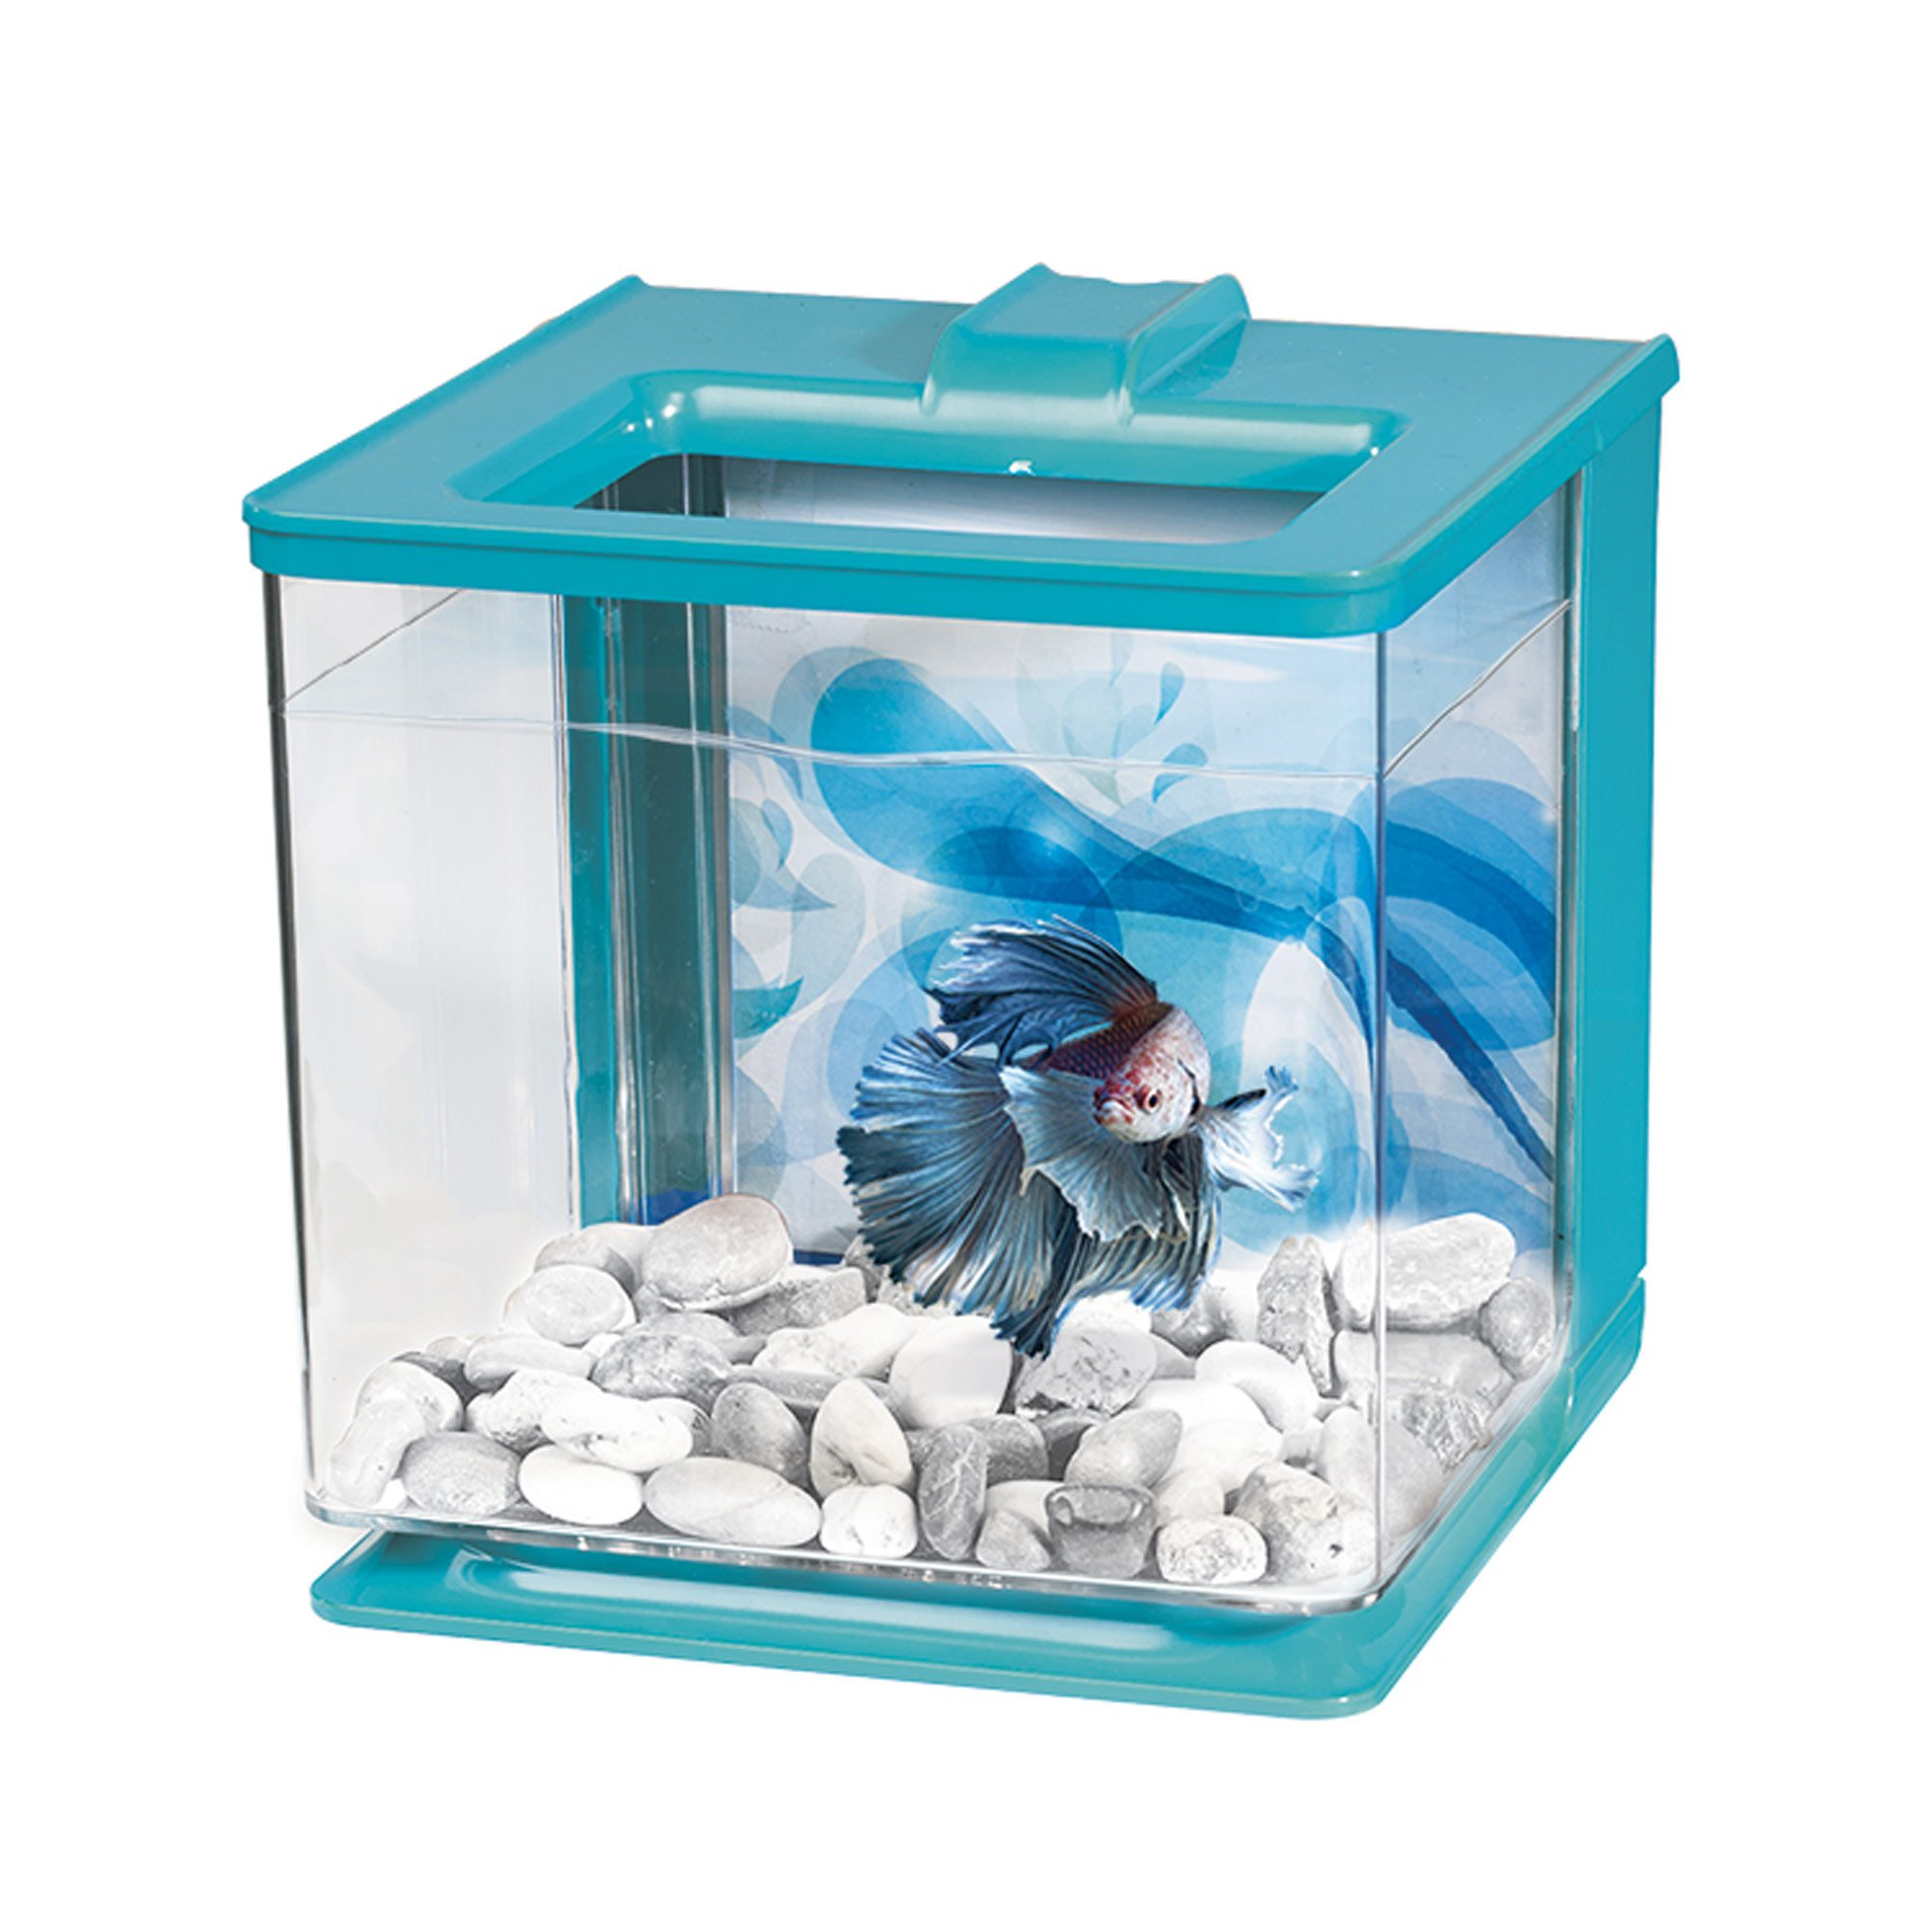 Marina betta ez care blue aquarium kit petco for Betta fish tanks petco